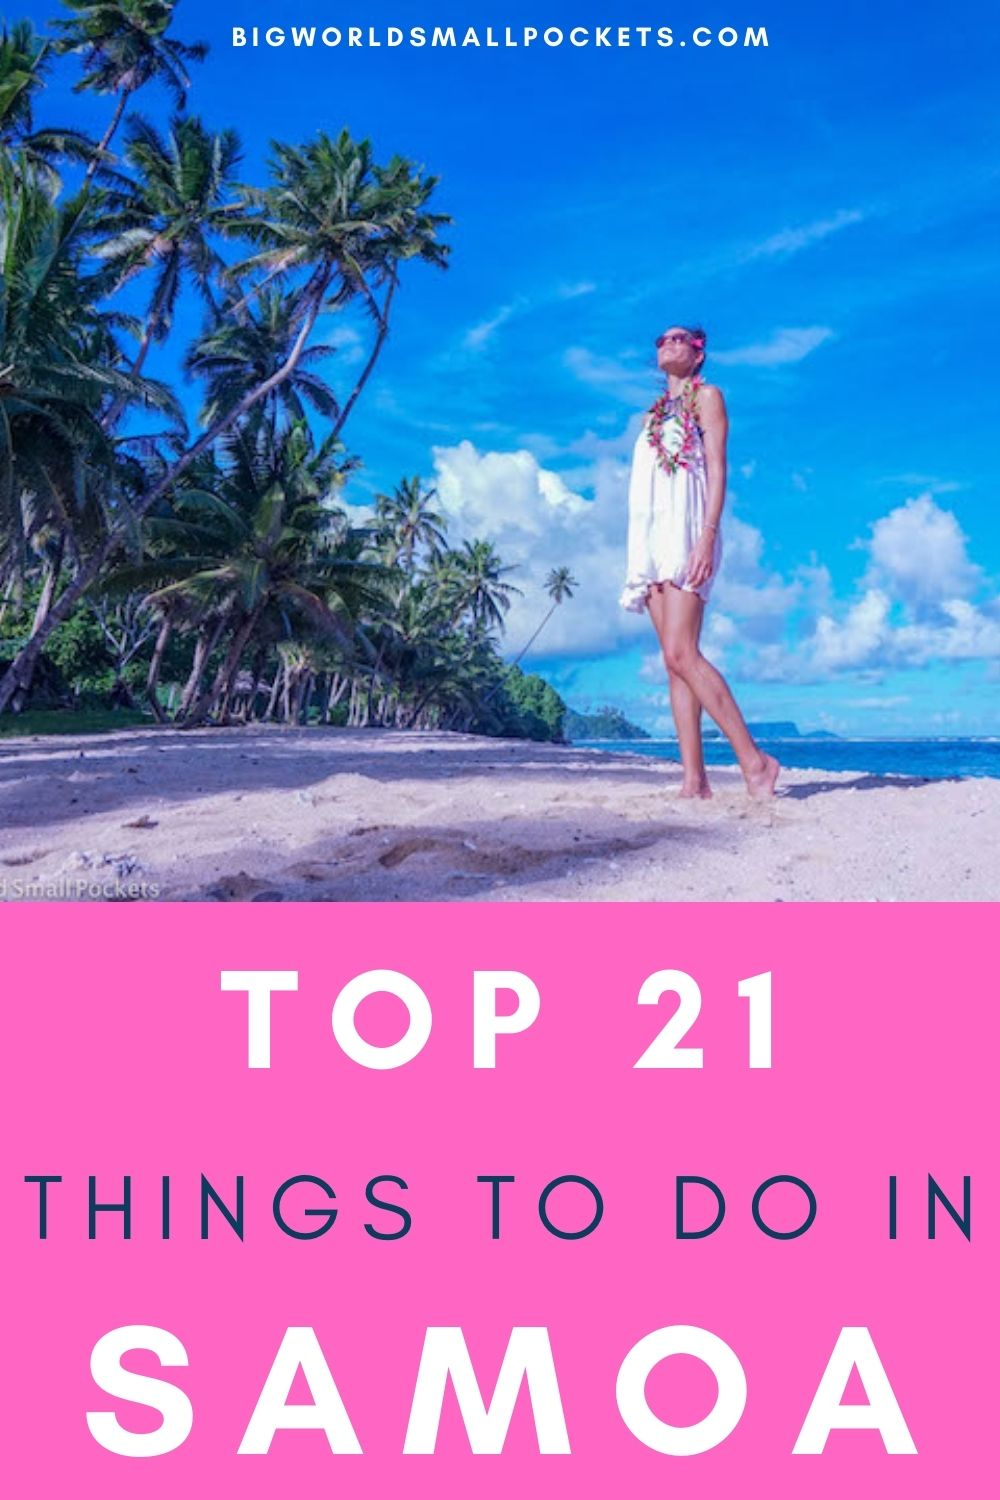 The Top 21 Things to Do in Samoa